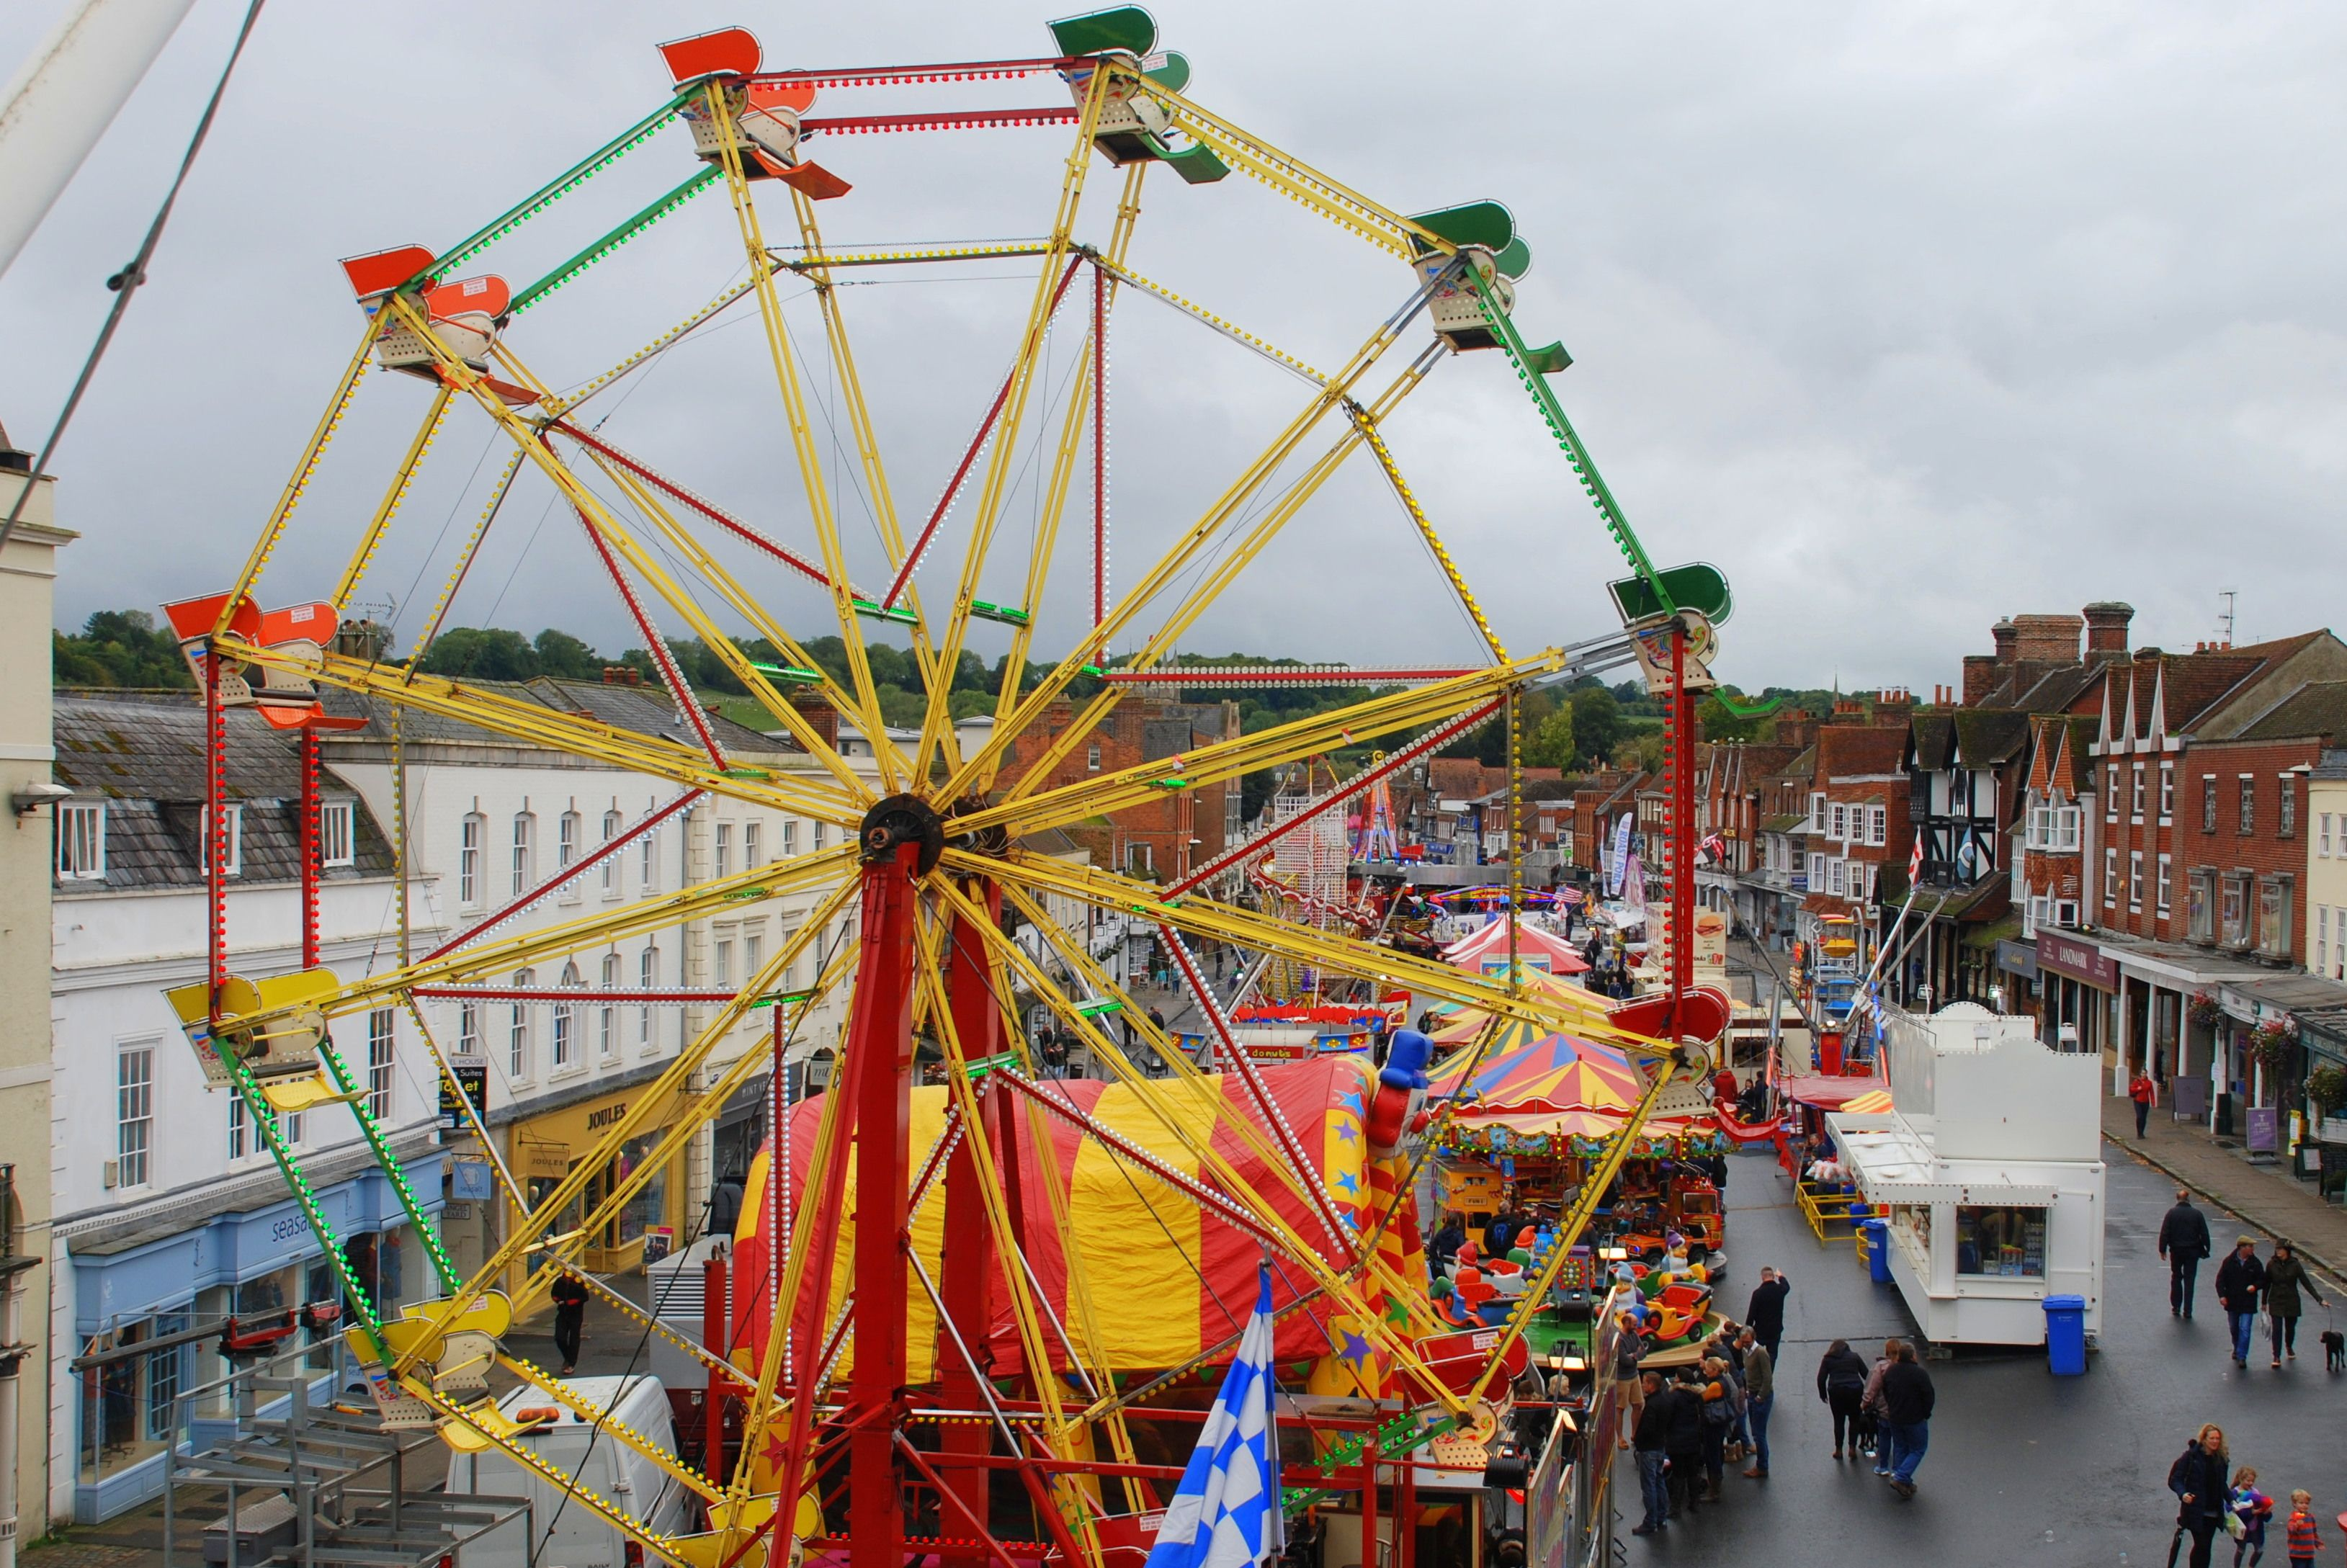 9 October 2021 - Mop Fair